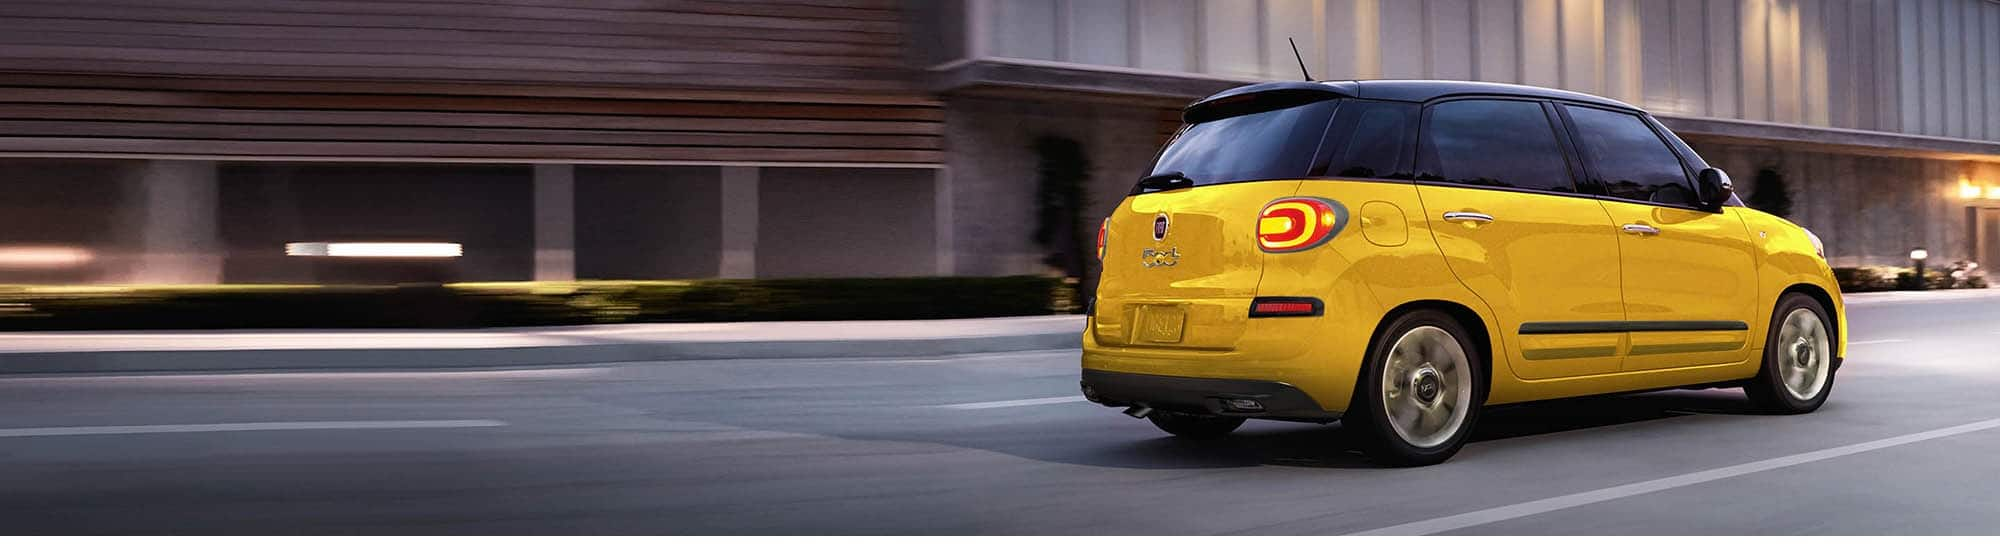 A rear profile view of a 2020 Fiat 500L Trekking being driven on a city street.